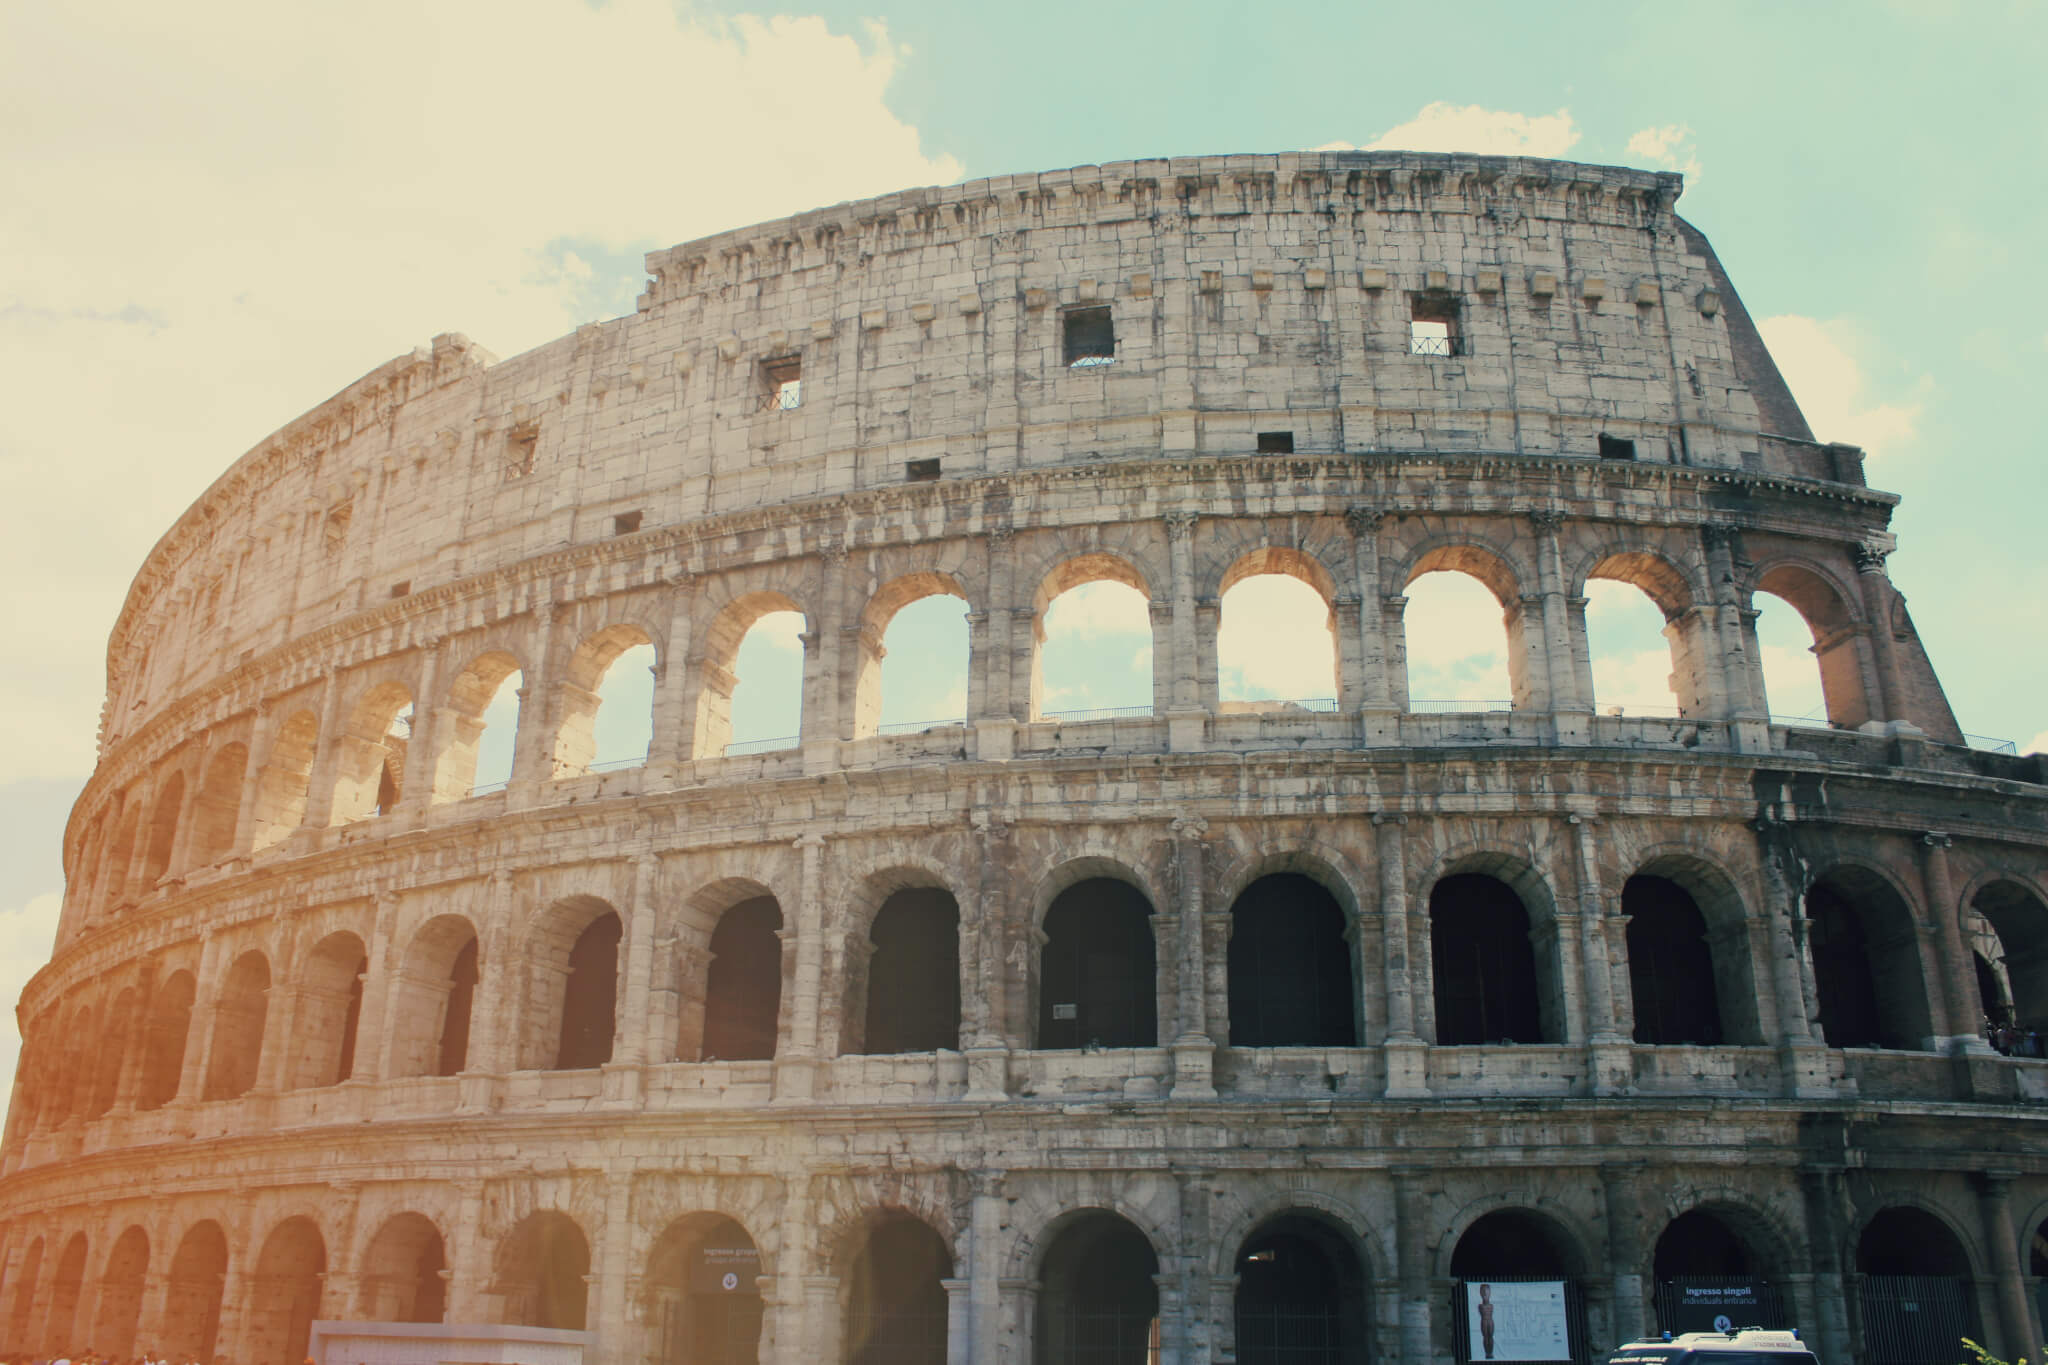 The Colosseum on a sunny day with blue skies